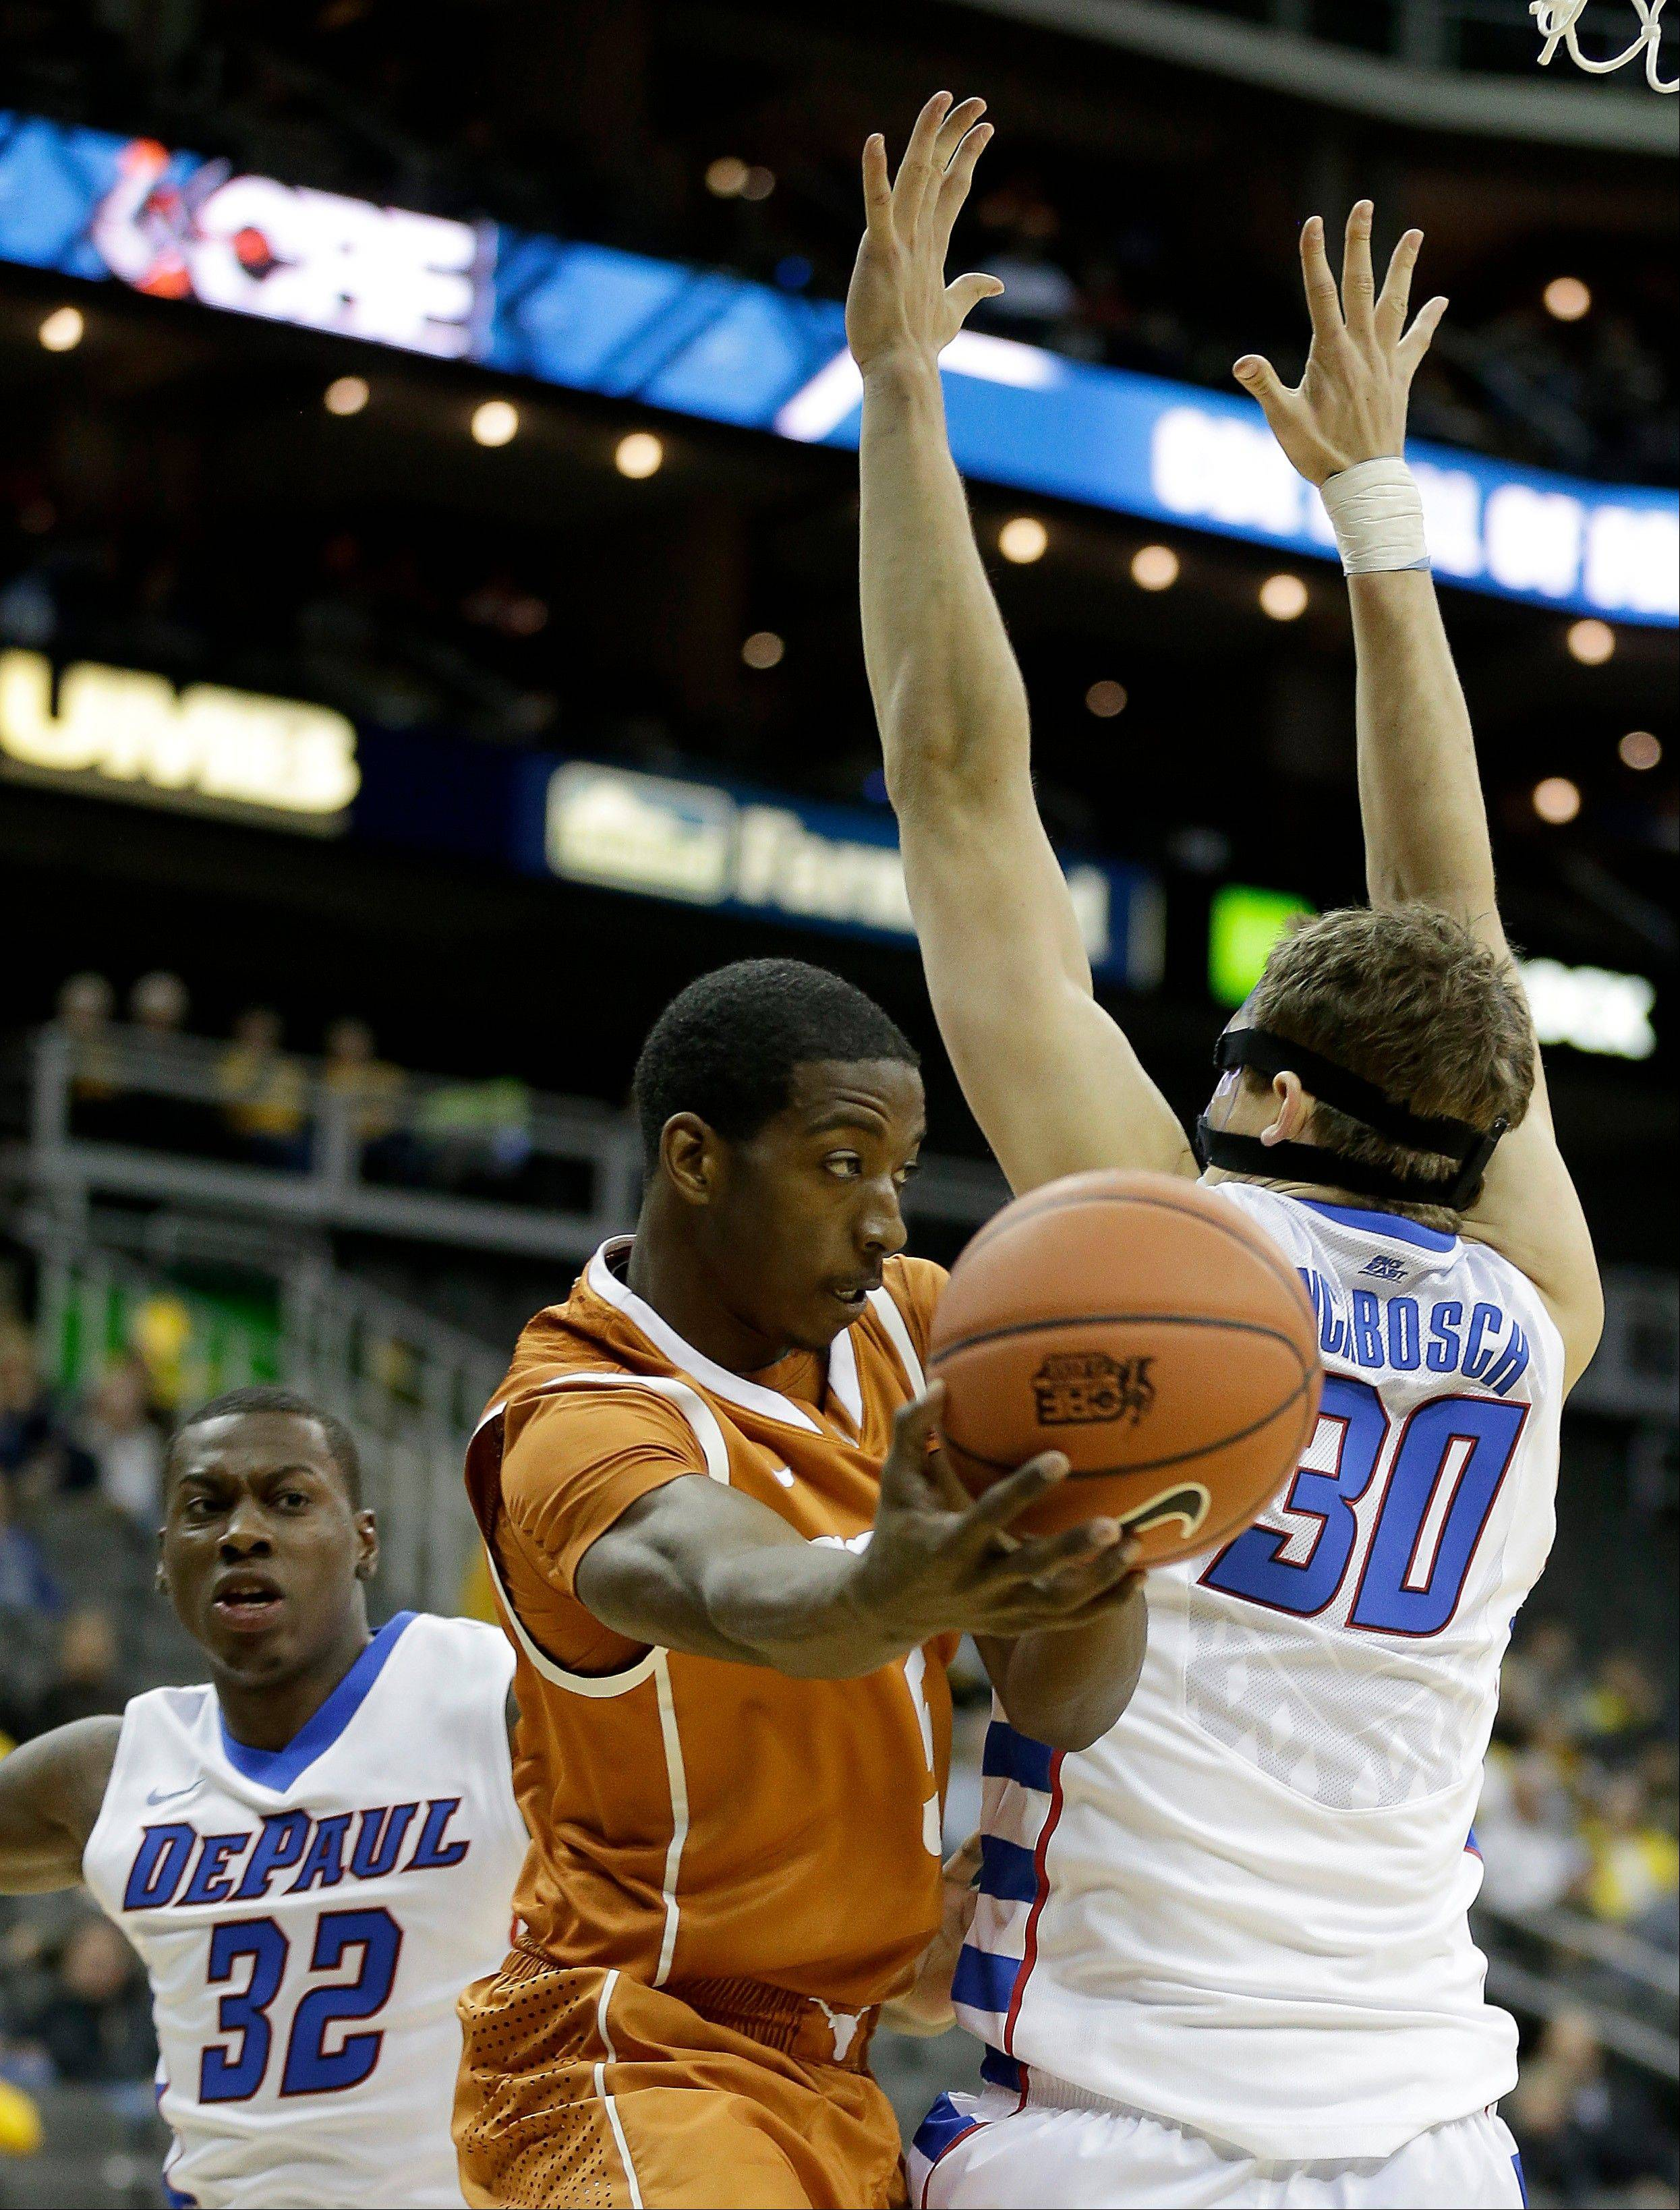 Texas' Damarcus Croaker, center, passes around DePaul's Peter Ryckbosch (30) during the first half of an NCAA college basketball game Tuesday, Nov. 26, 2013, in Kansas City, Mo.